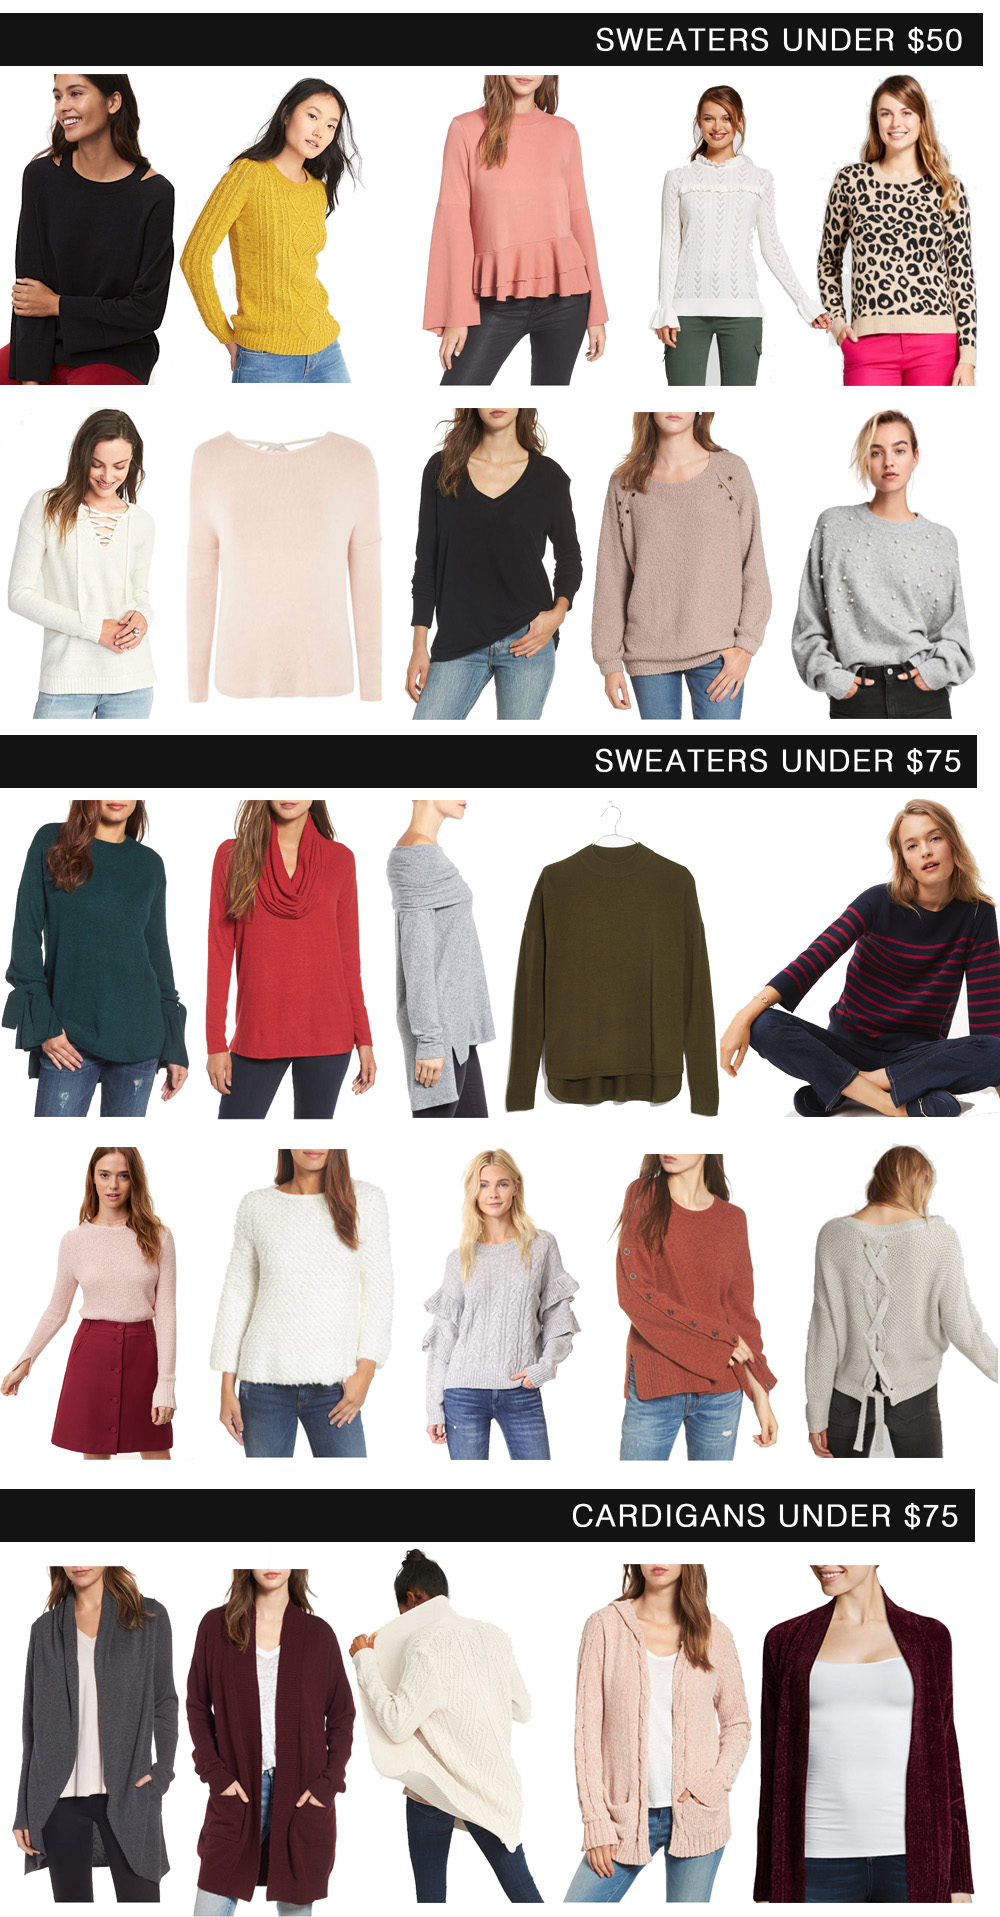 25 Awesome Sweaters Under $75 // the modern savvy, a life & style blog